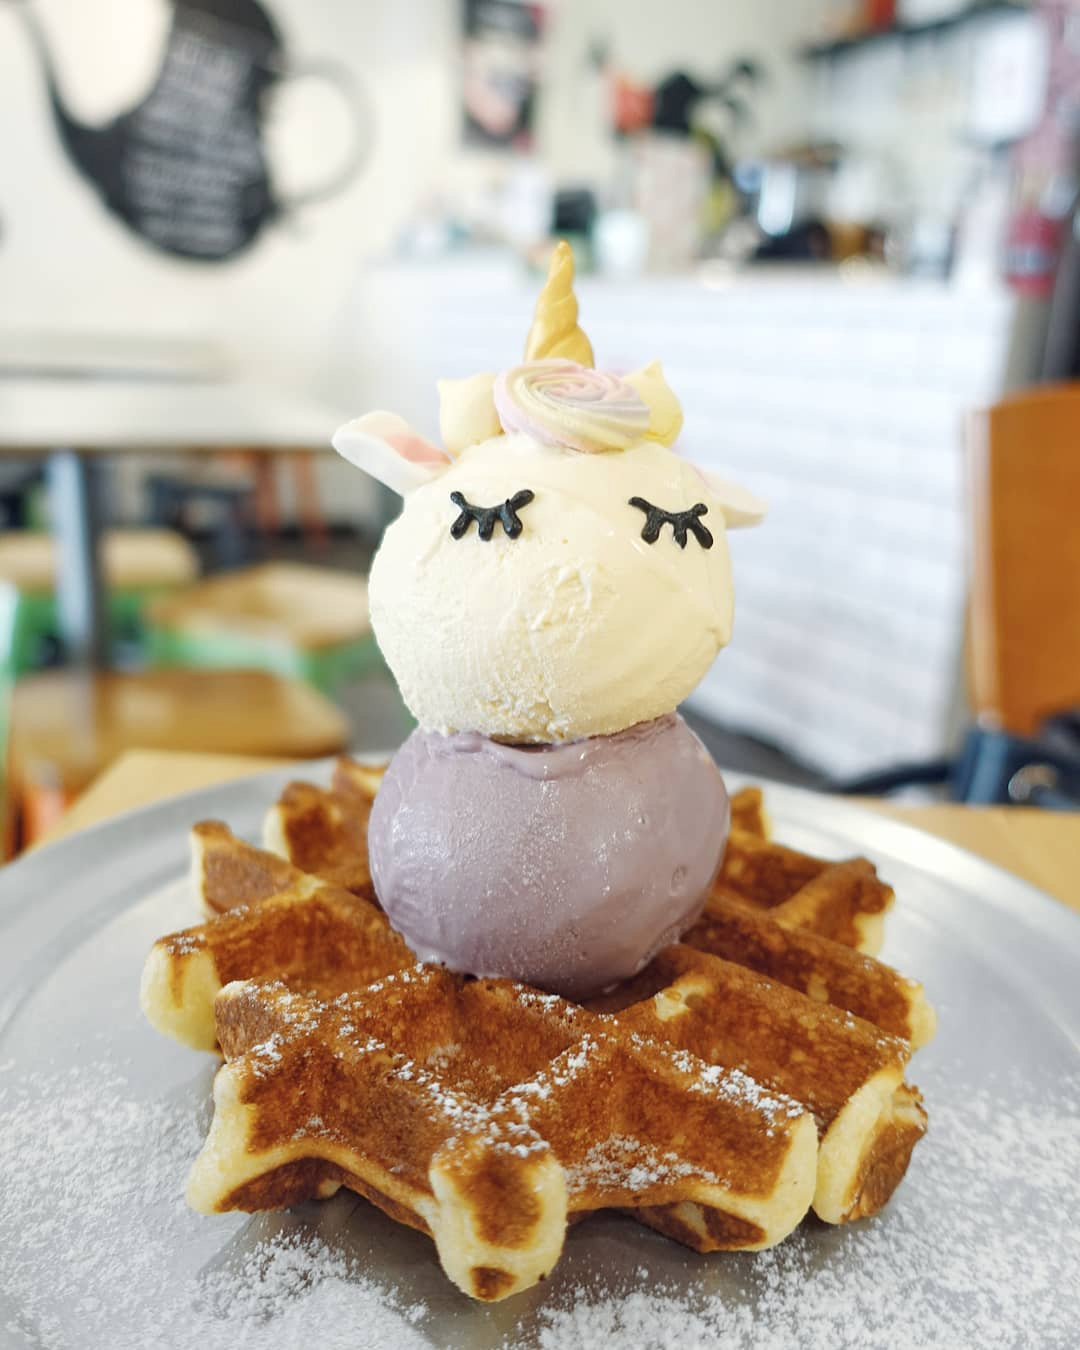 north-east cafes hatter street bakehouse unicorn whoaffle